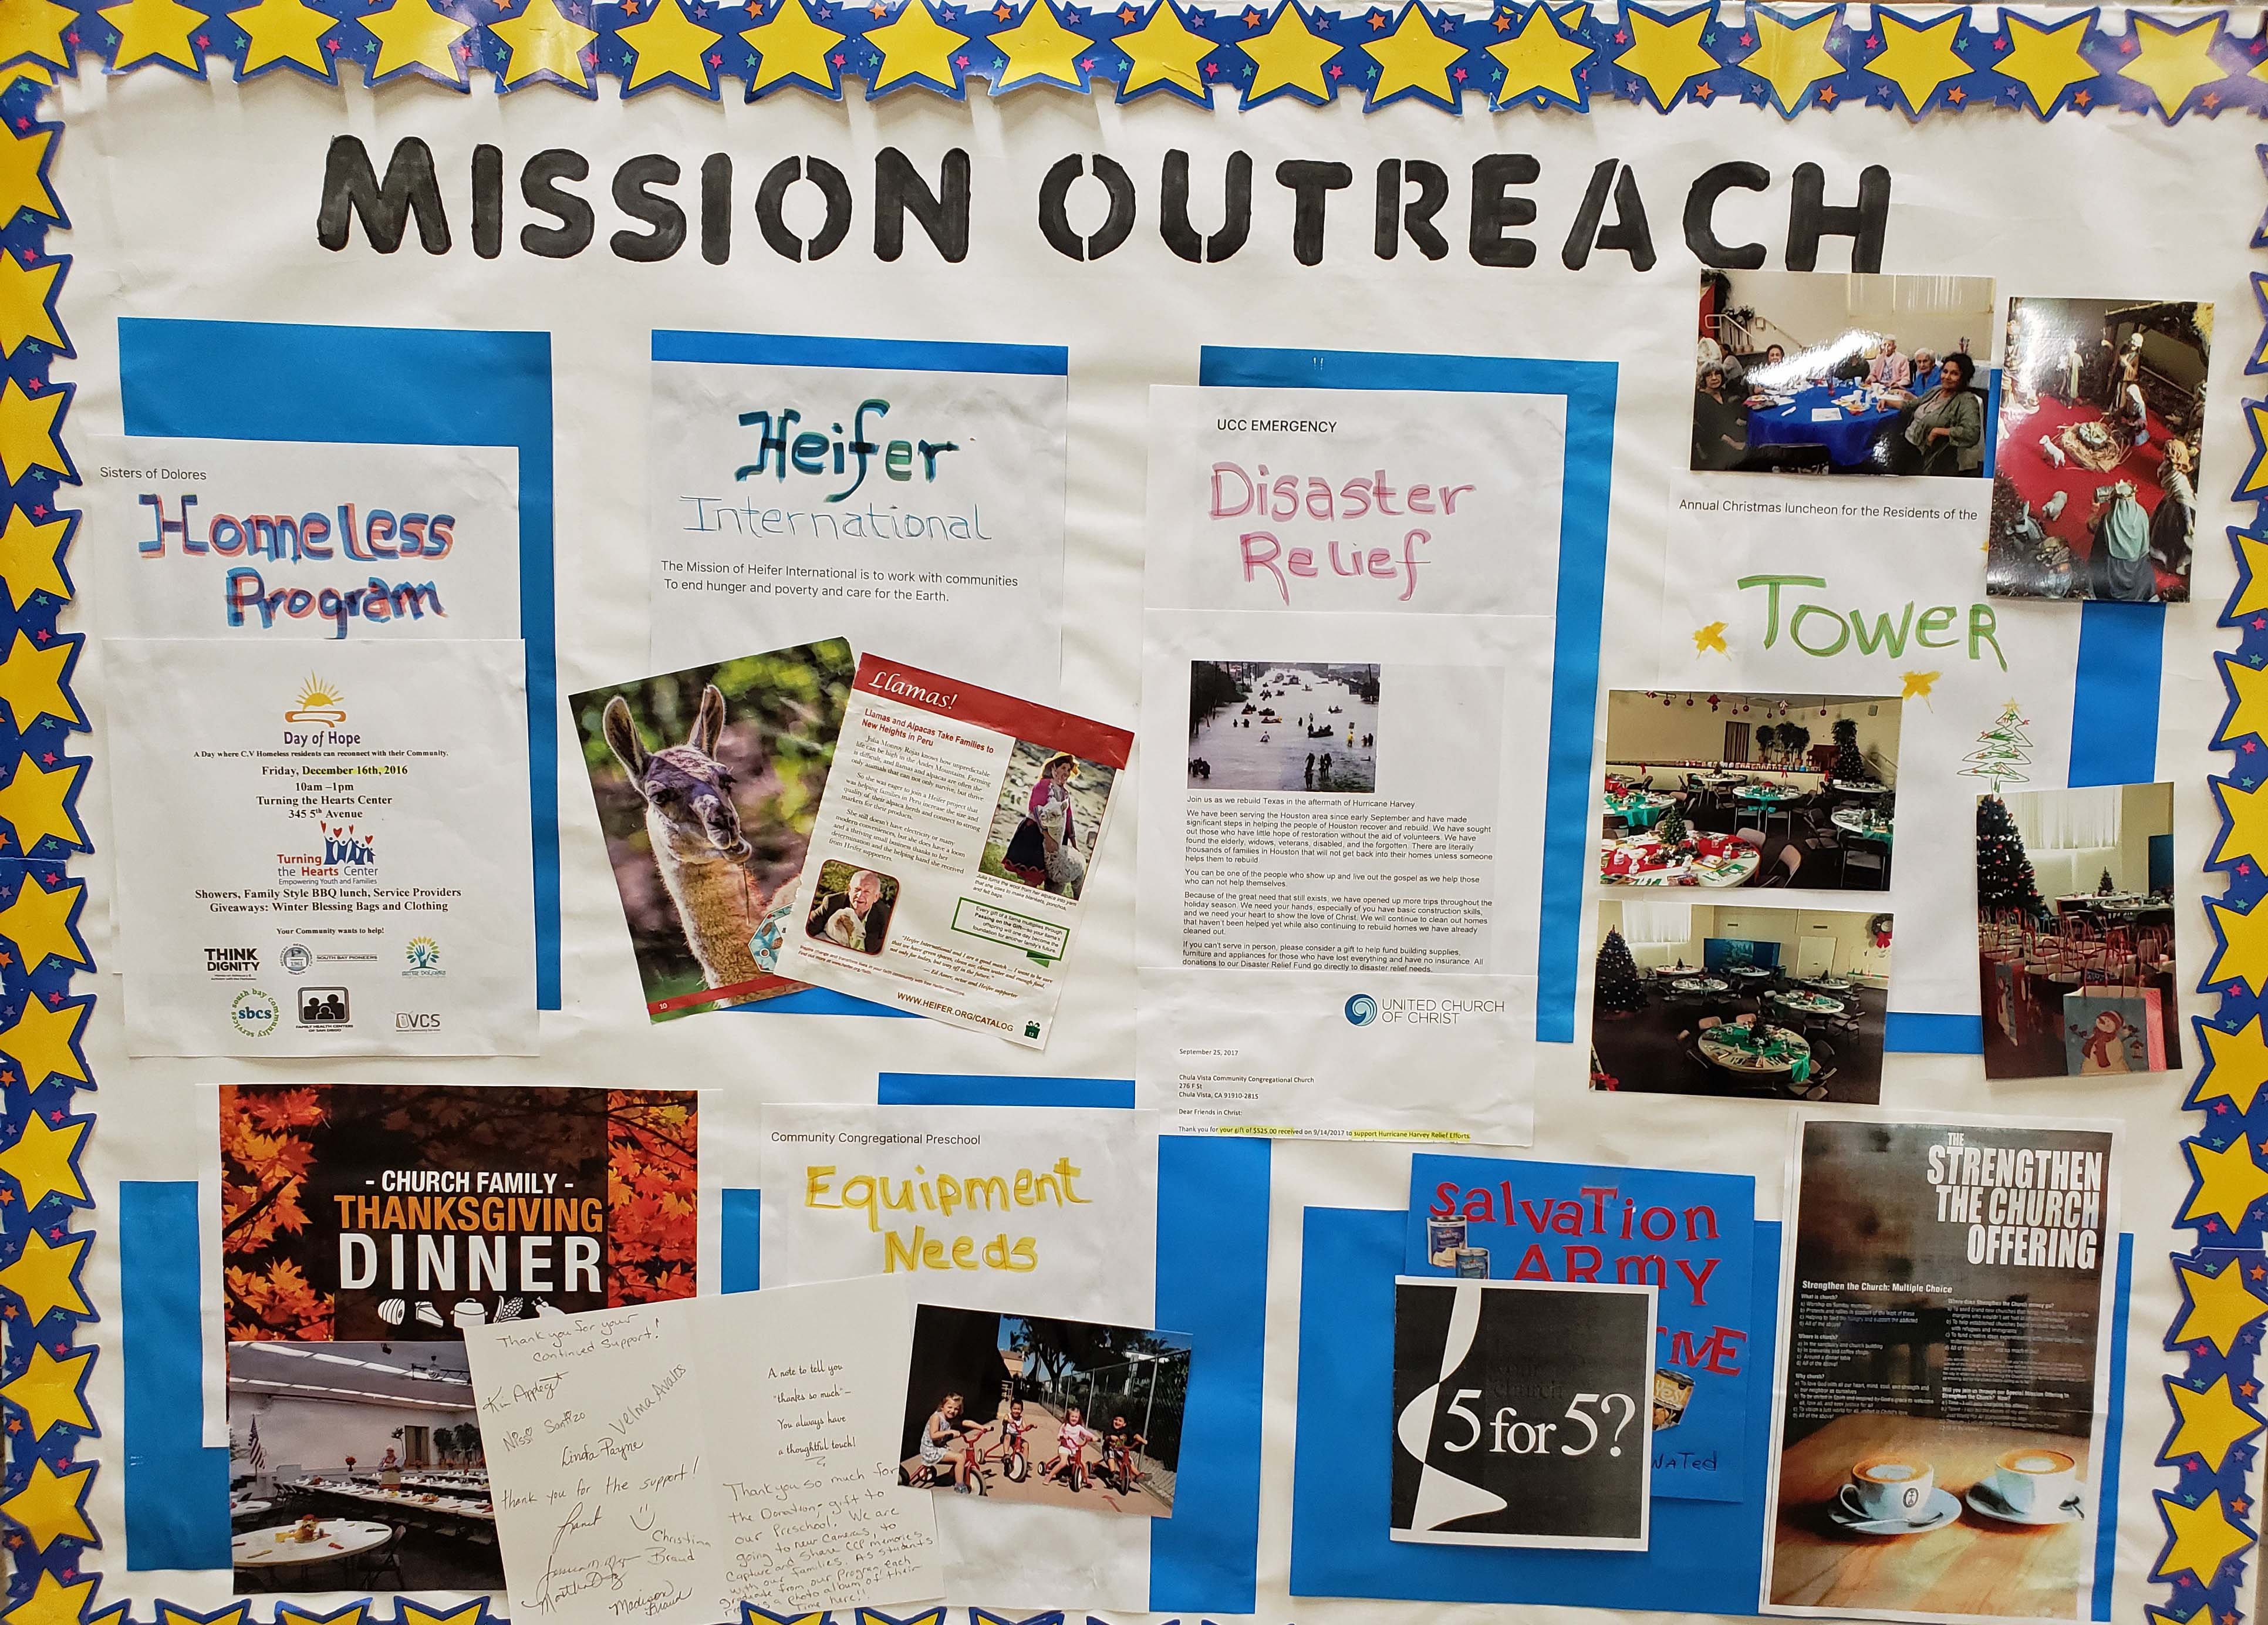 Outreach Projects Community Congregational Church Of Chula Vista Ucc